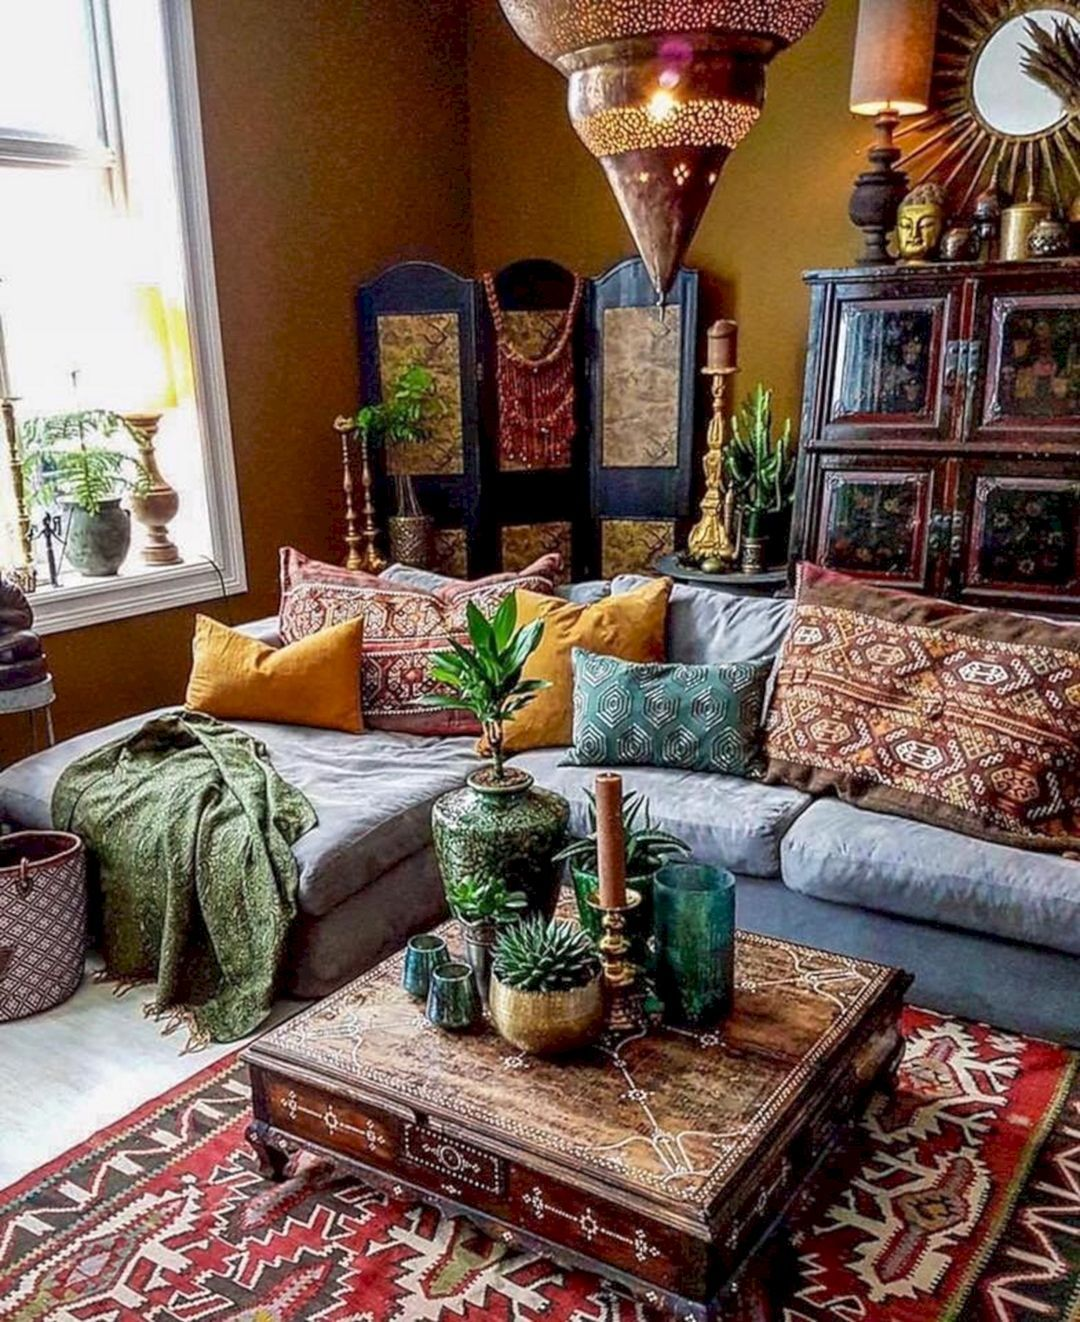 24 Stunning Chic Bohemian Home Decorating Ideas For Best Inspiration Design Deco Bohemian Living Room Decor Moroccan Living Room Bohemian Style Living Room